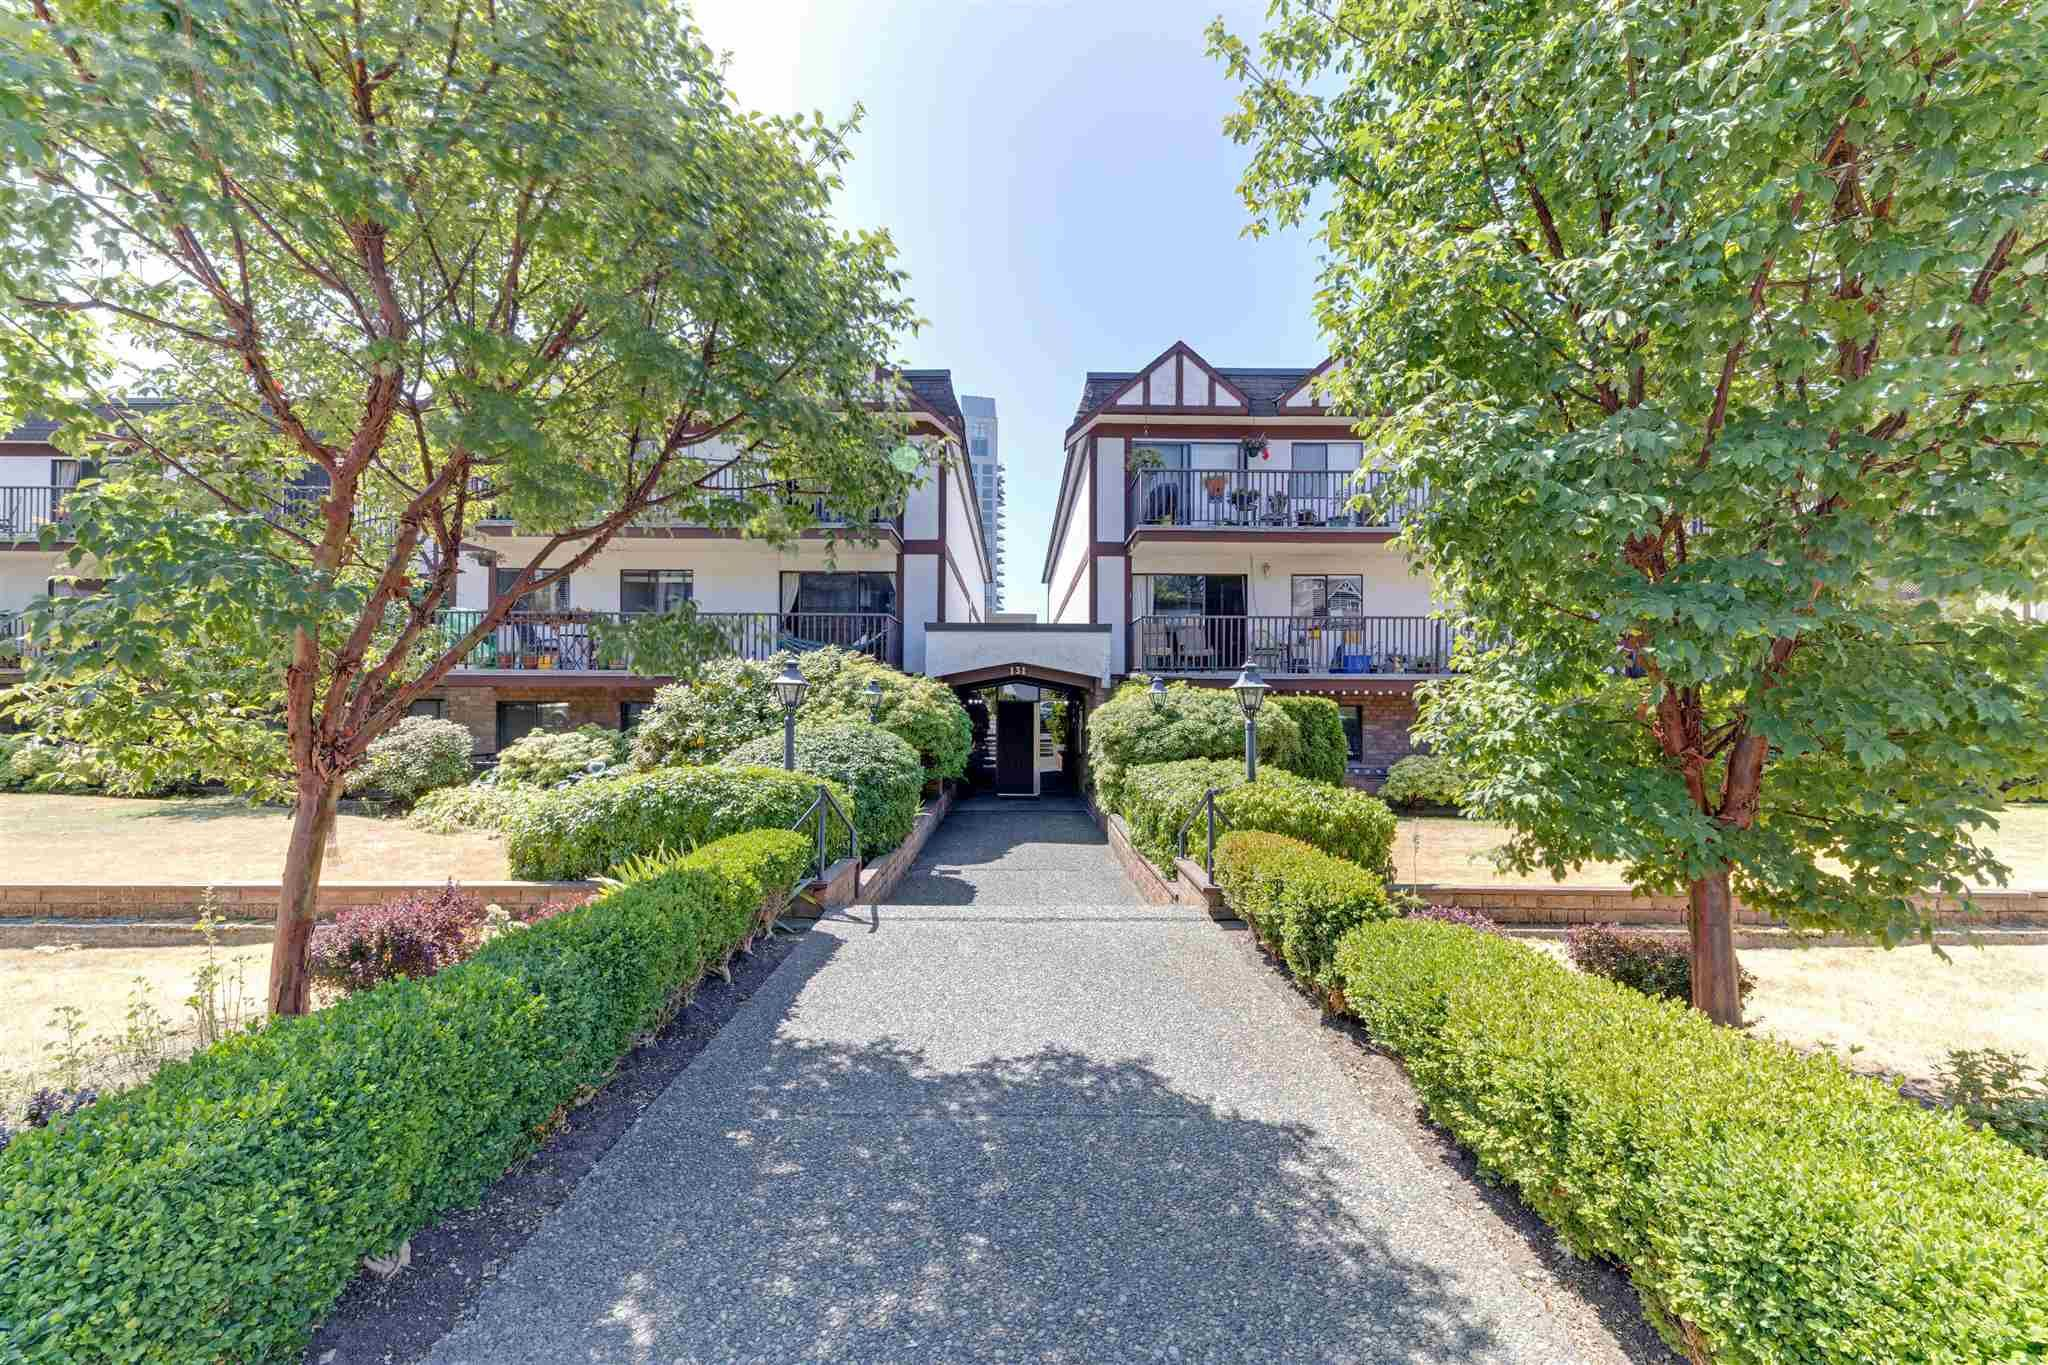 """Main Photo: 107 131 W 4TH Street in North Vancouver: Lower Lonsdale Condo for sale in """"Nottingham Place"""" : MLS®# R2605693"""